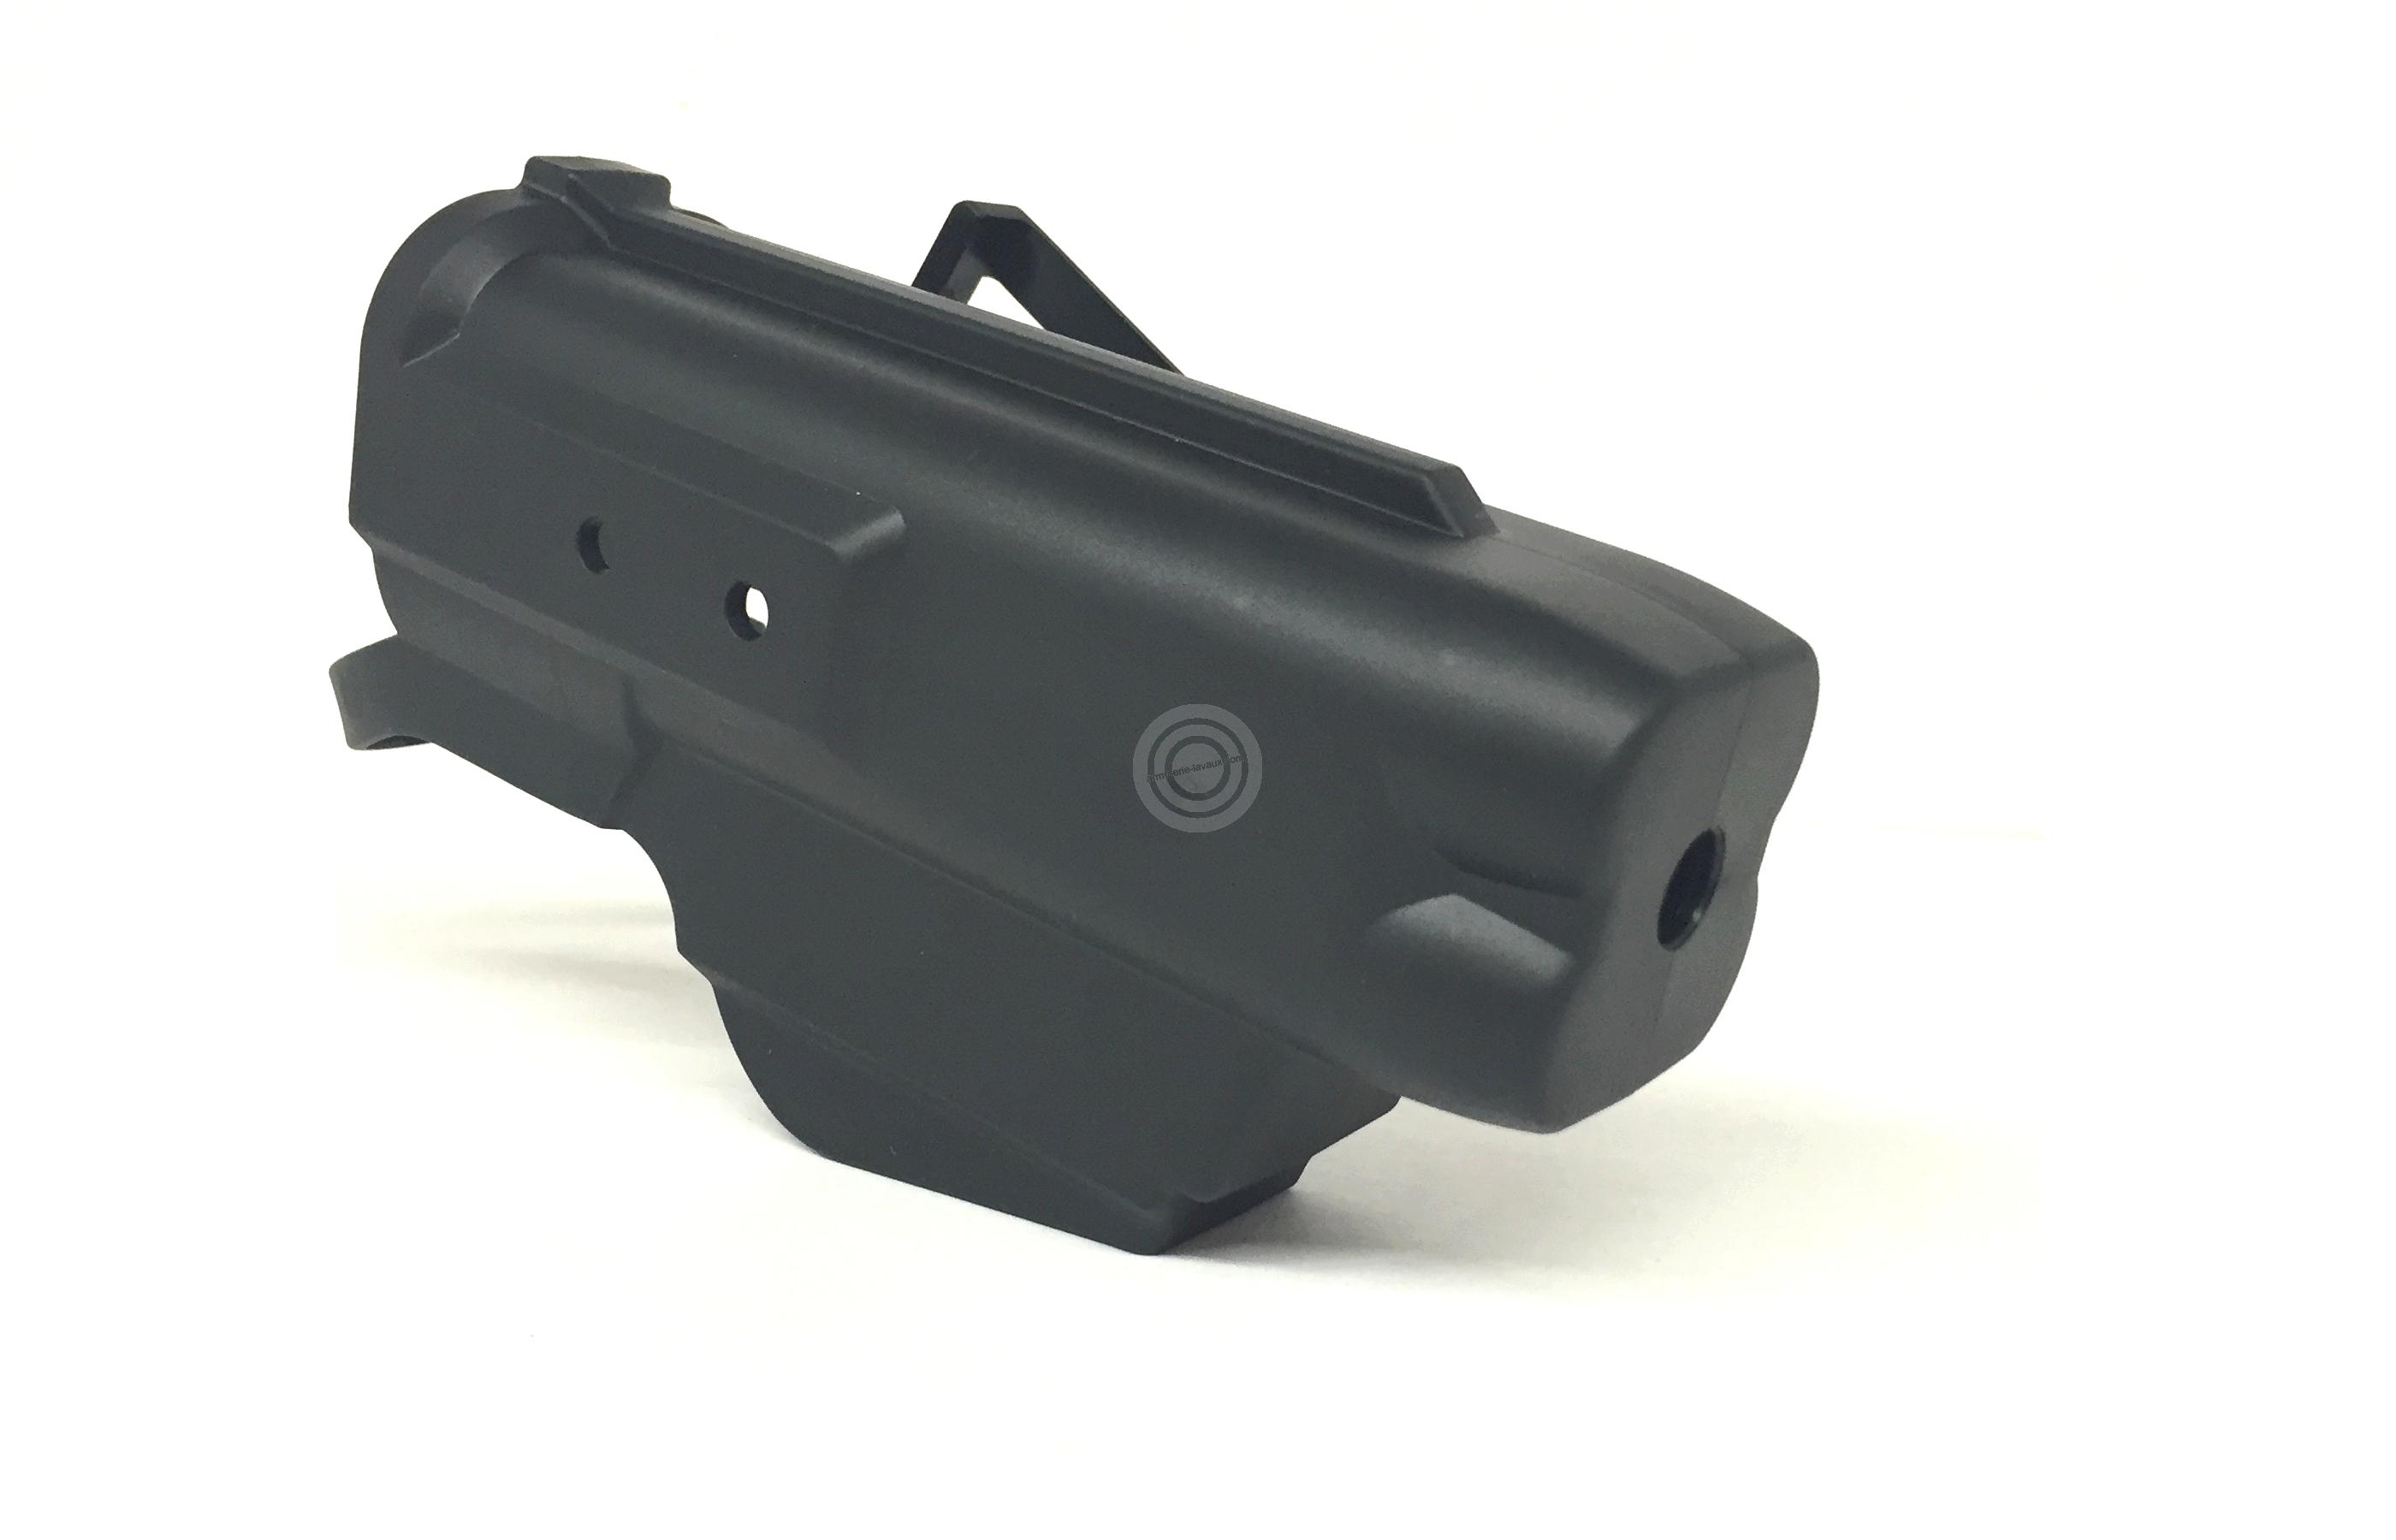 Holster rapide Kydex JPX4 ''special police'' (modèle 4 coups)